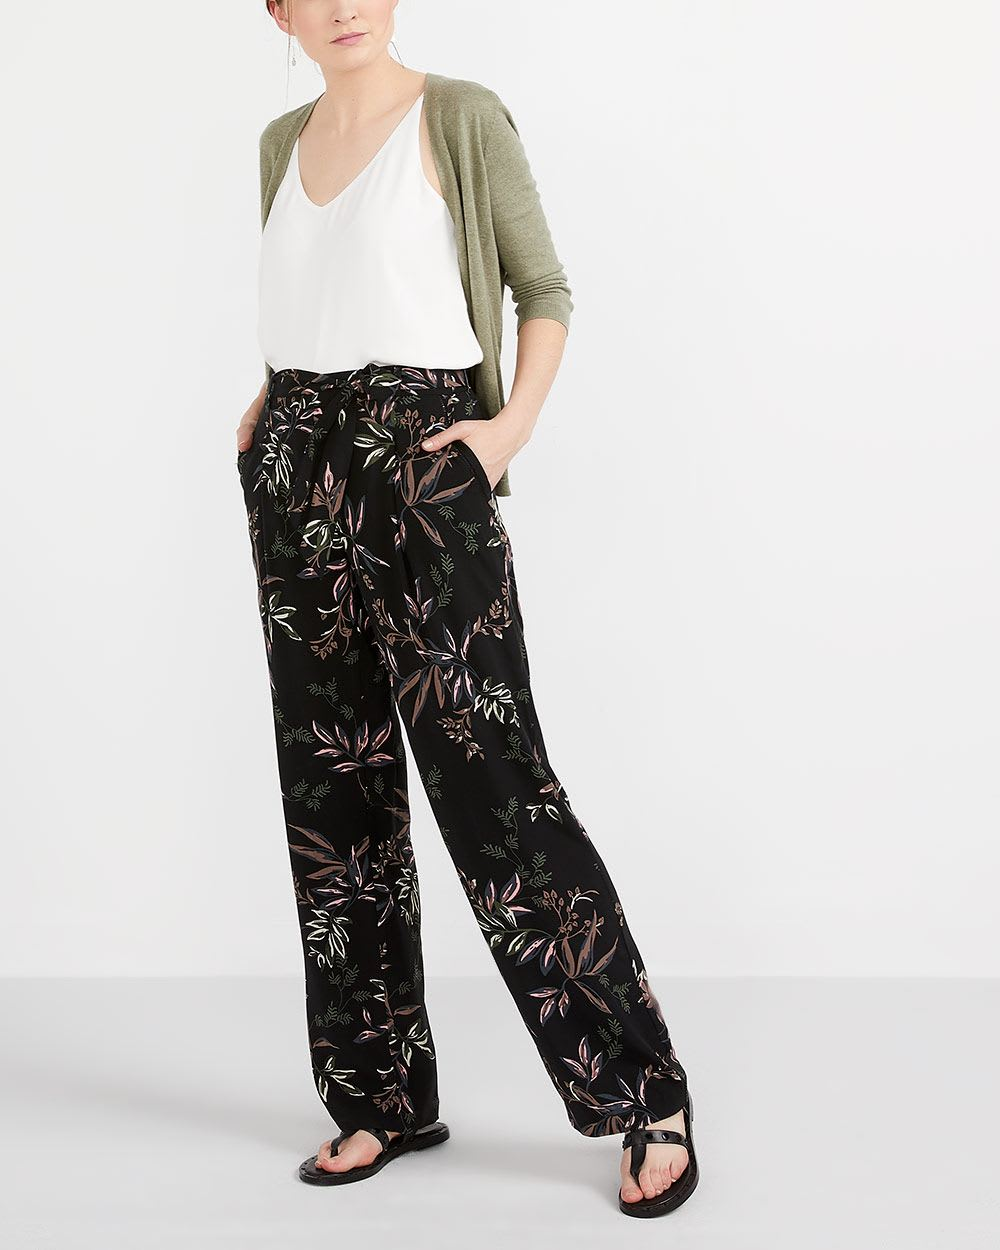 Printed Wide Leg Pants with Sash